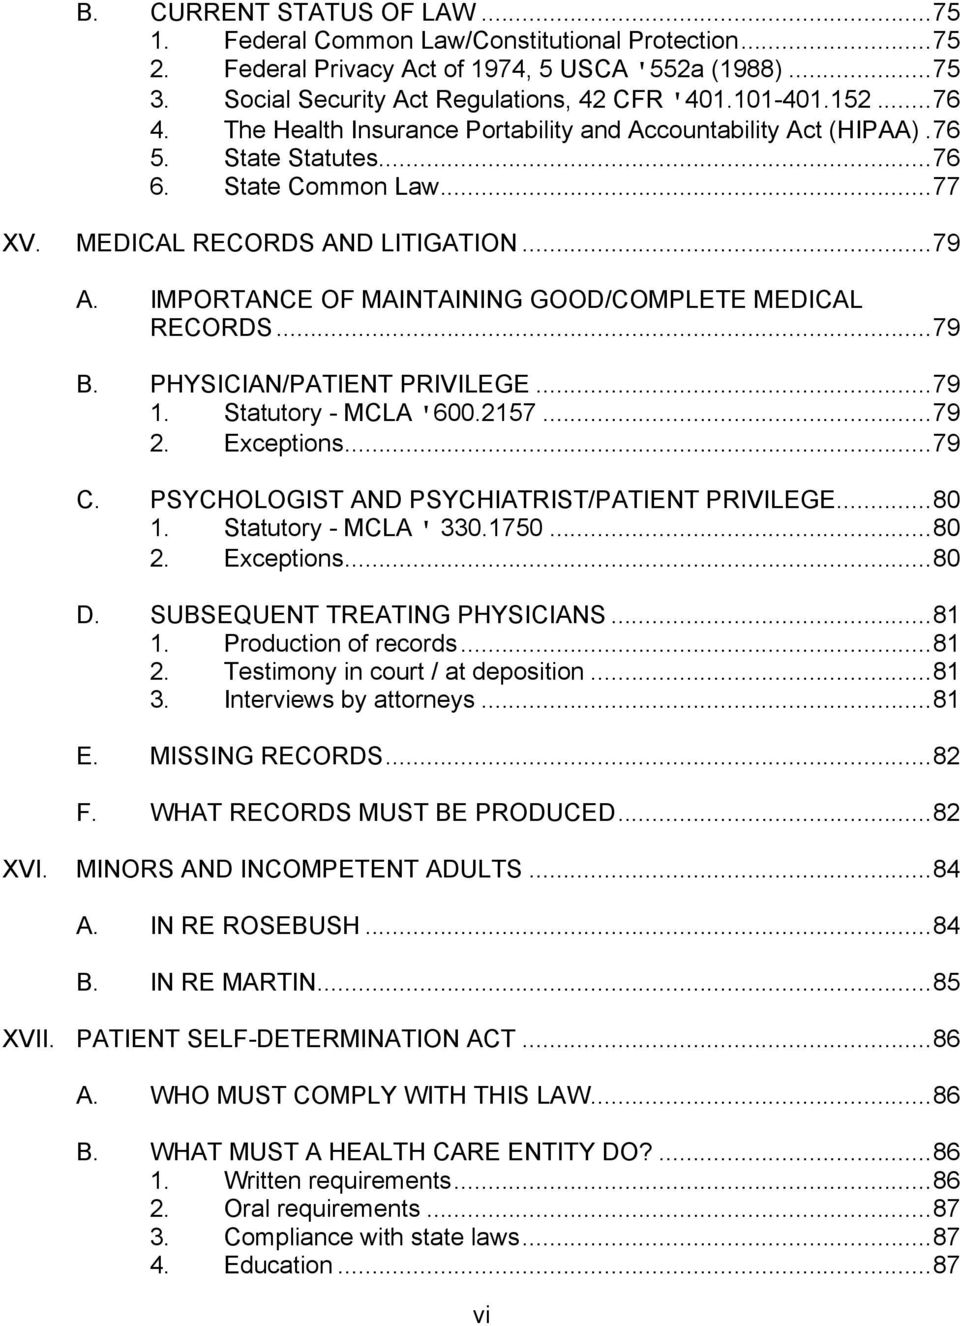 IMPORTANCE OF MAINTAINING GOOD/COMPLETE MEDICAL RECORDS...79 B. PHYSICIAN/PATIENT PRIVILEGE...79 1. Statutory - MCLA '600.2157...79 2. Exceptions...79 C.